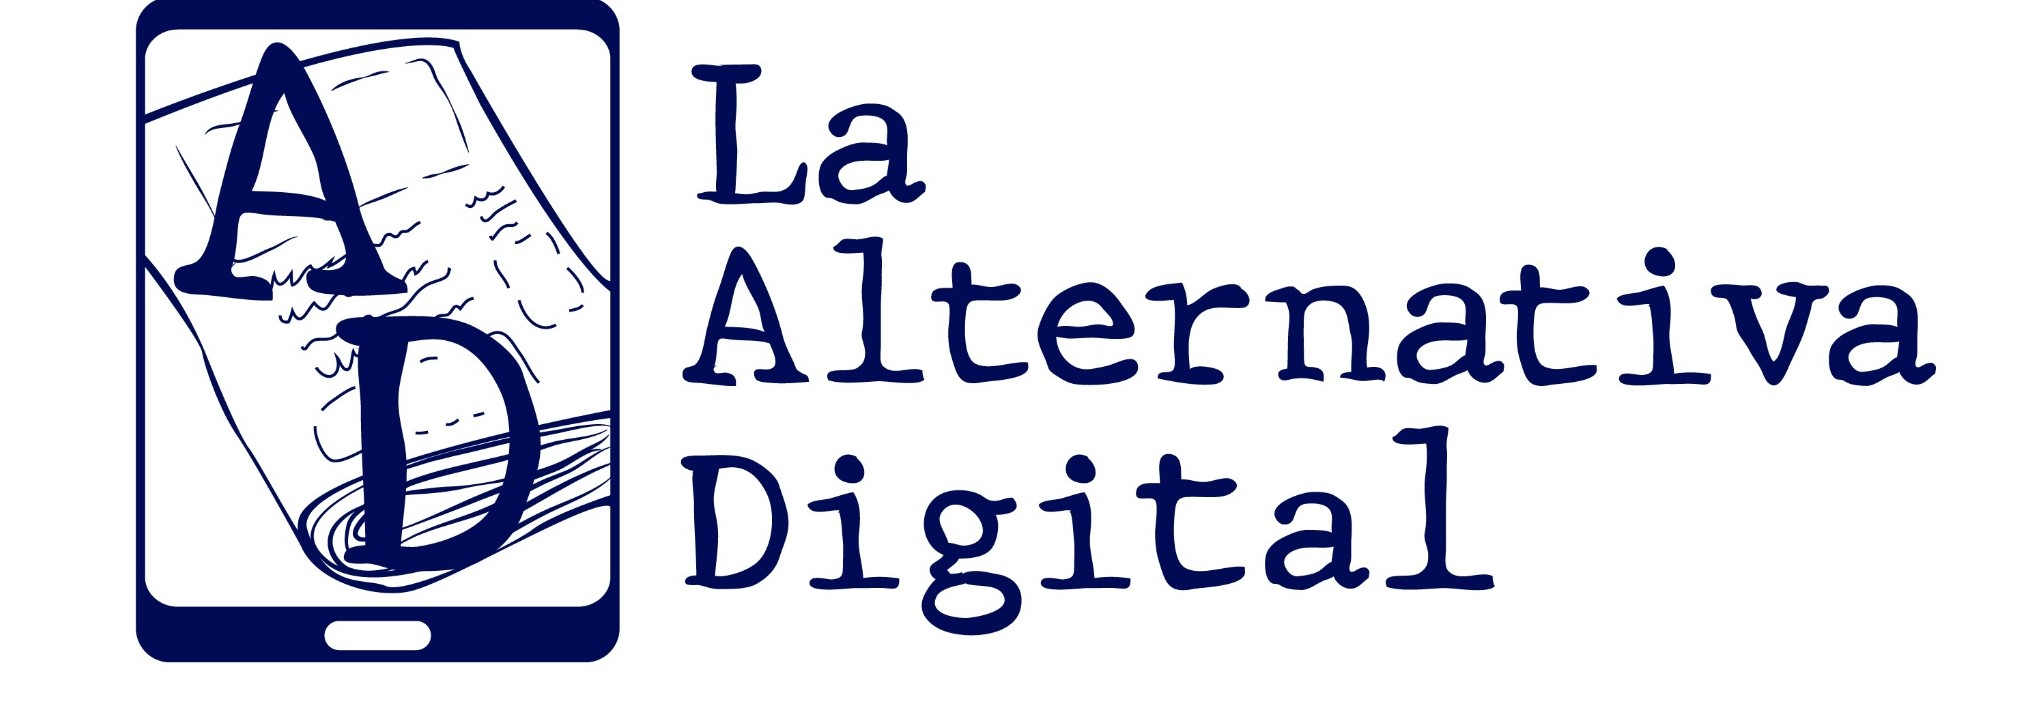 La Alternativa digital